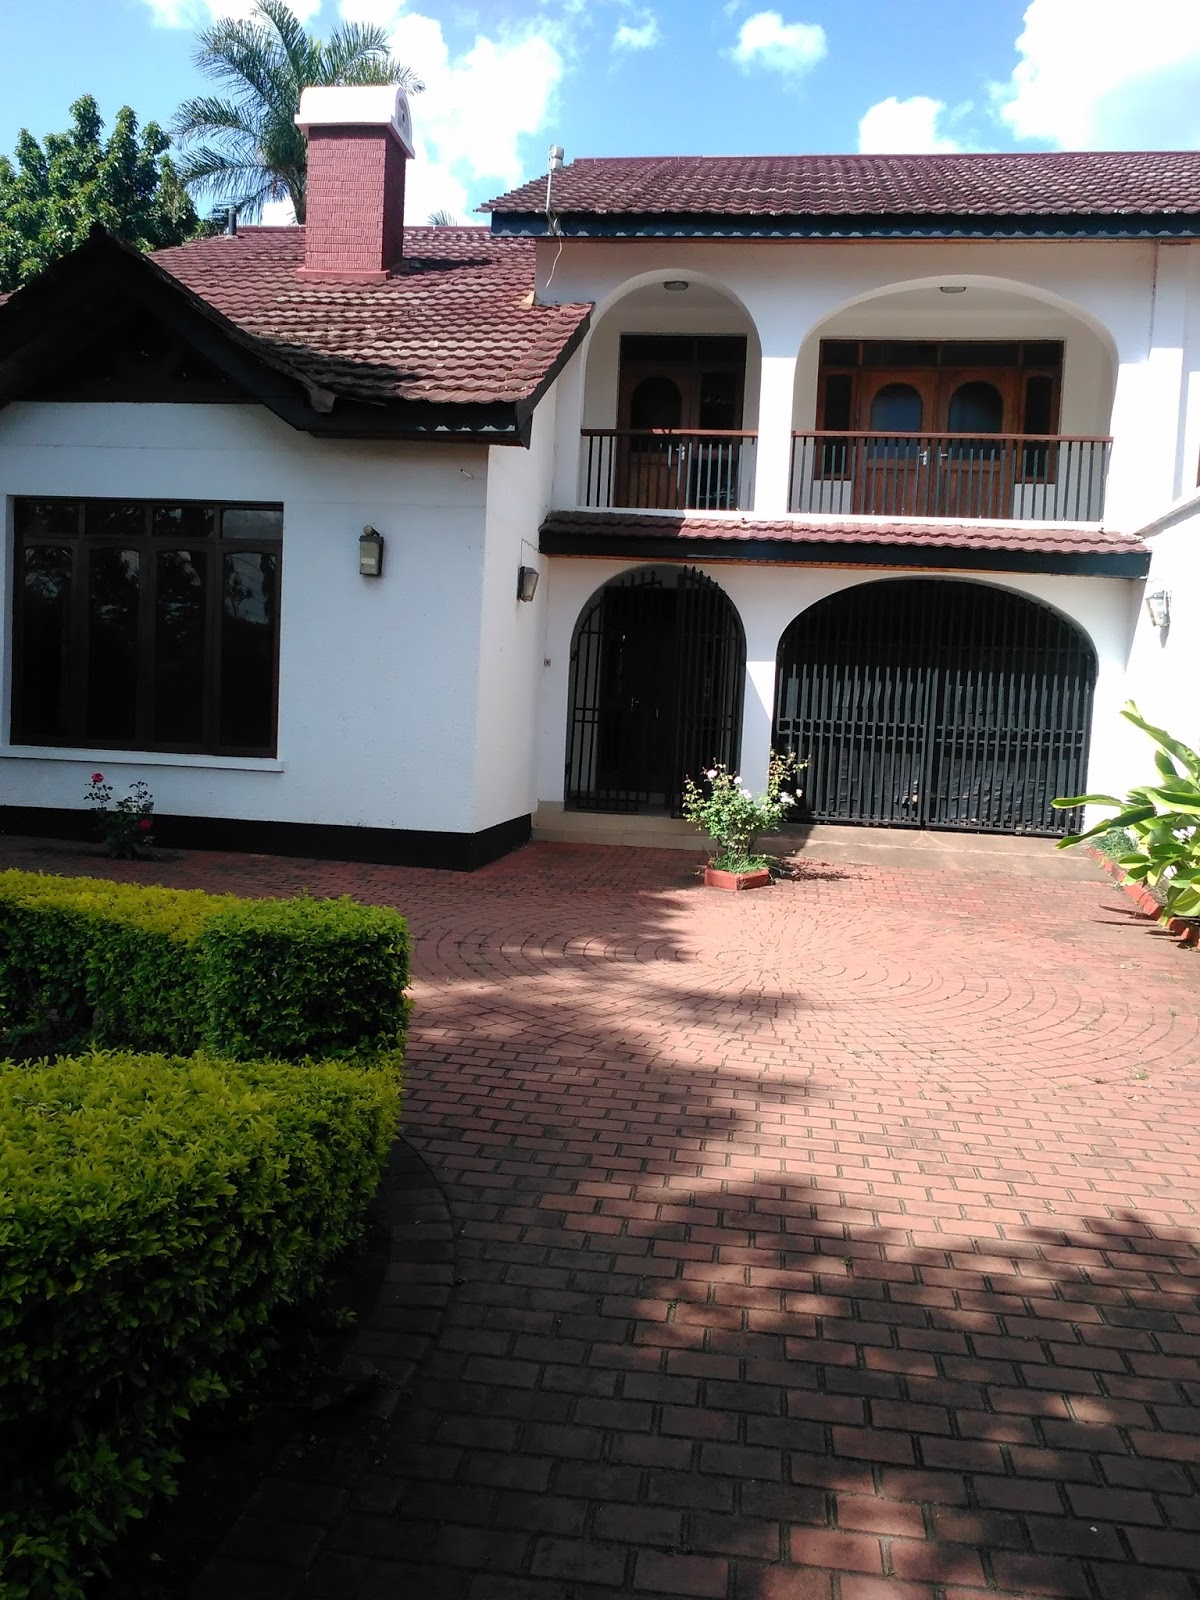 Rent House In Tanzania Arusha Rent Houses Houses For Sale Vacation Travel Houses For Rent